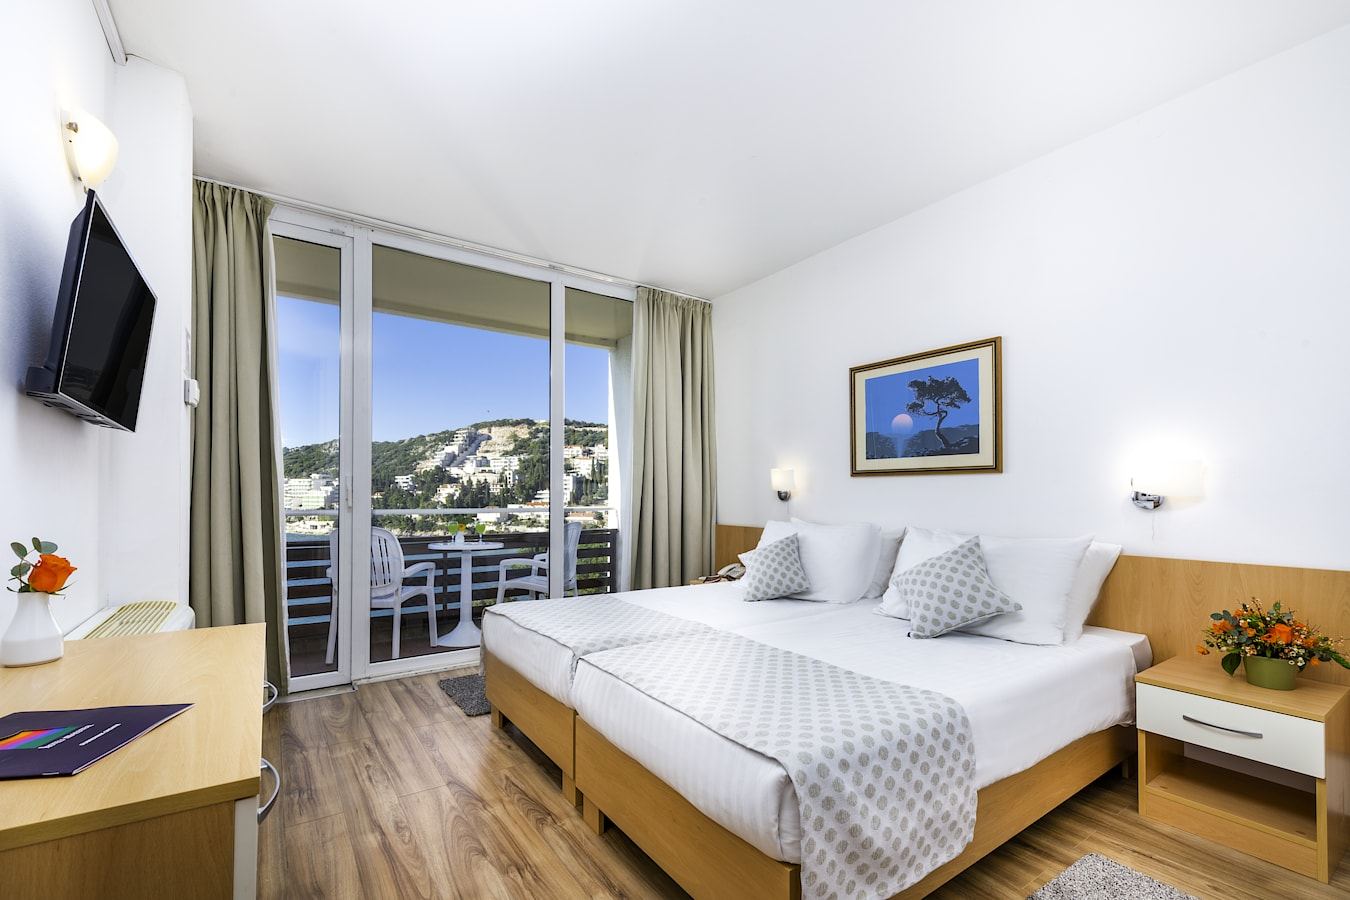 adriatic-hotel-dubrovnik-balcony-double-room-sea-view.jpg